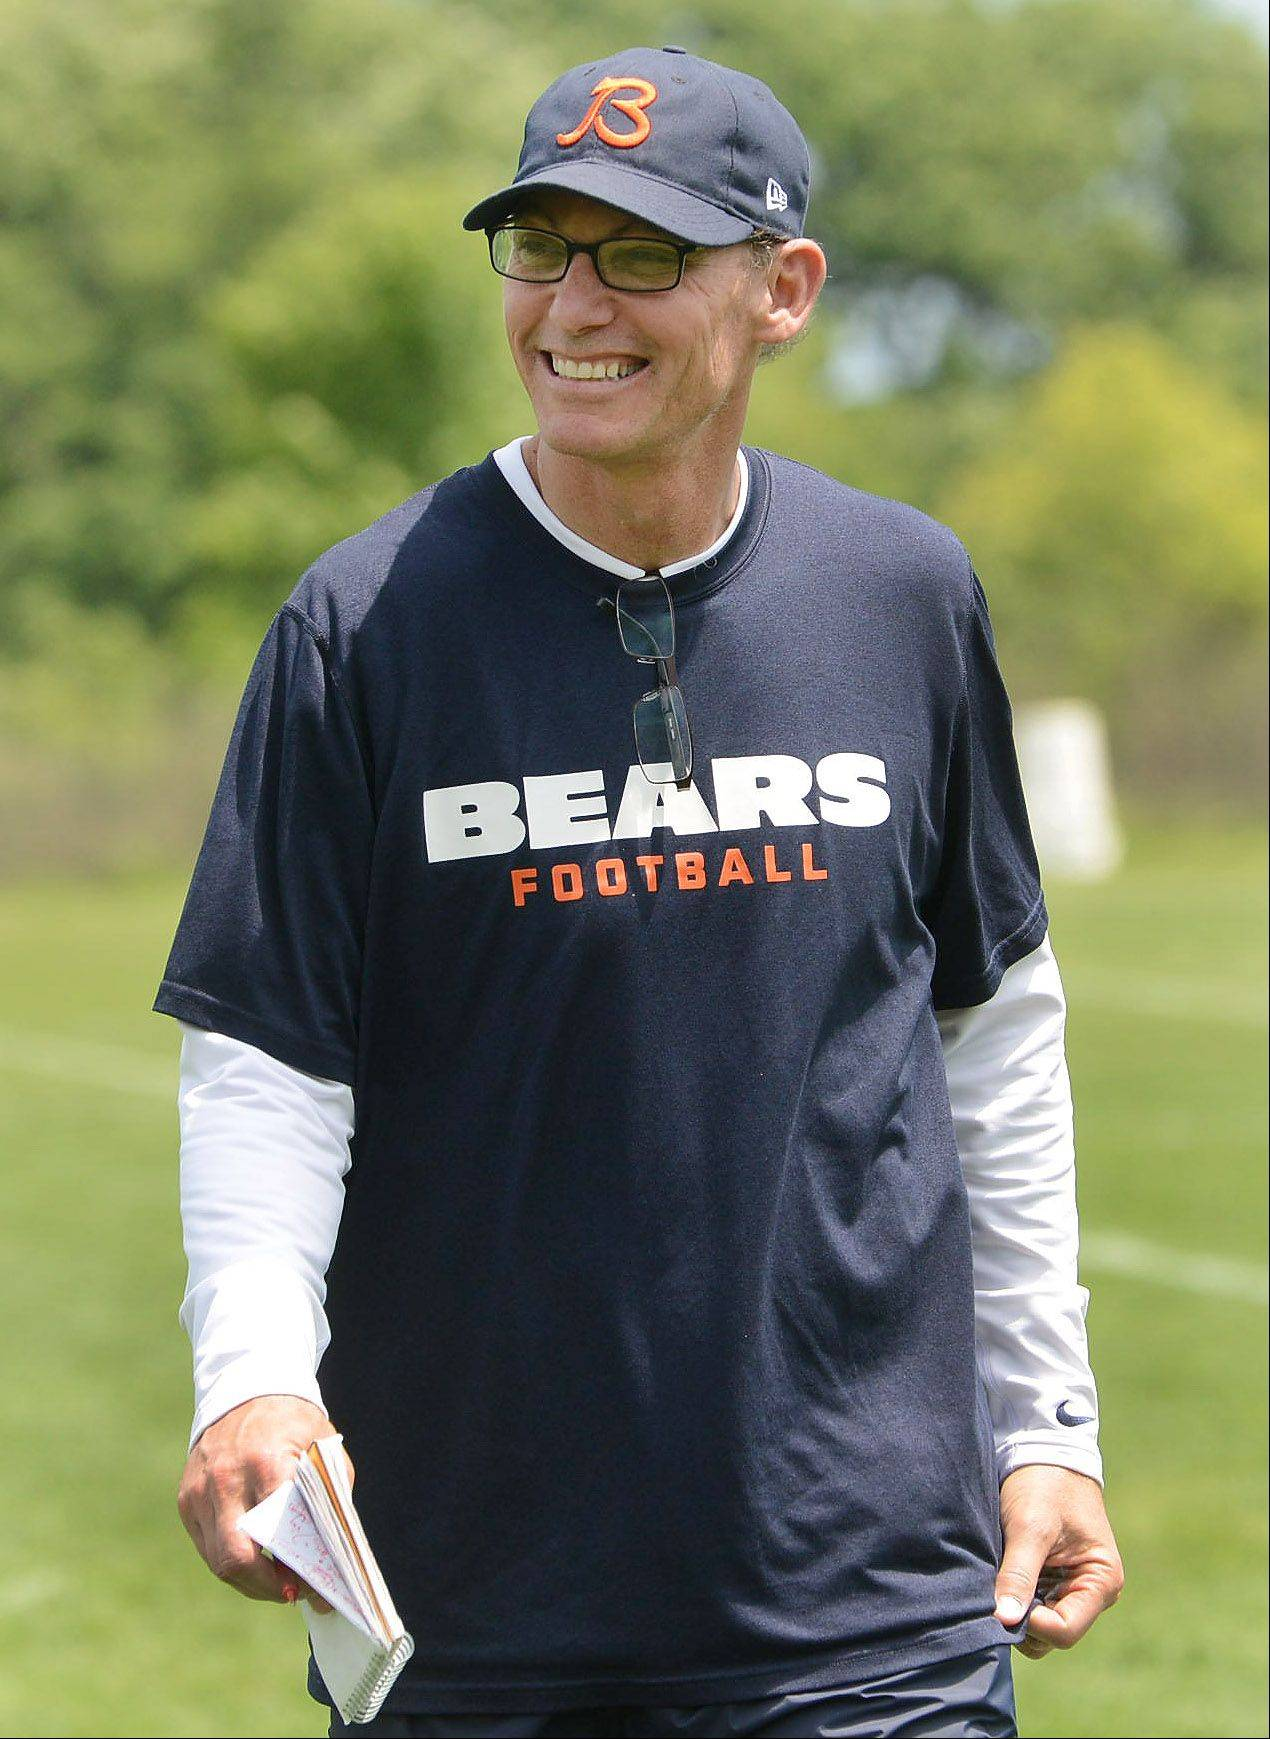 With the Bears finishing at 10-6 last season, Marc Trestman may be smiling now, but he won't have the usual grace period given to most new NFL coaches.